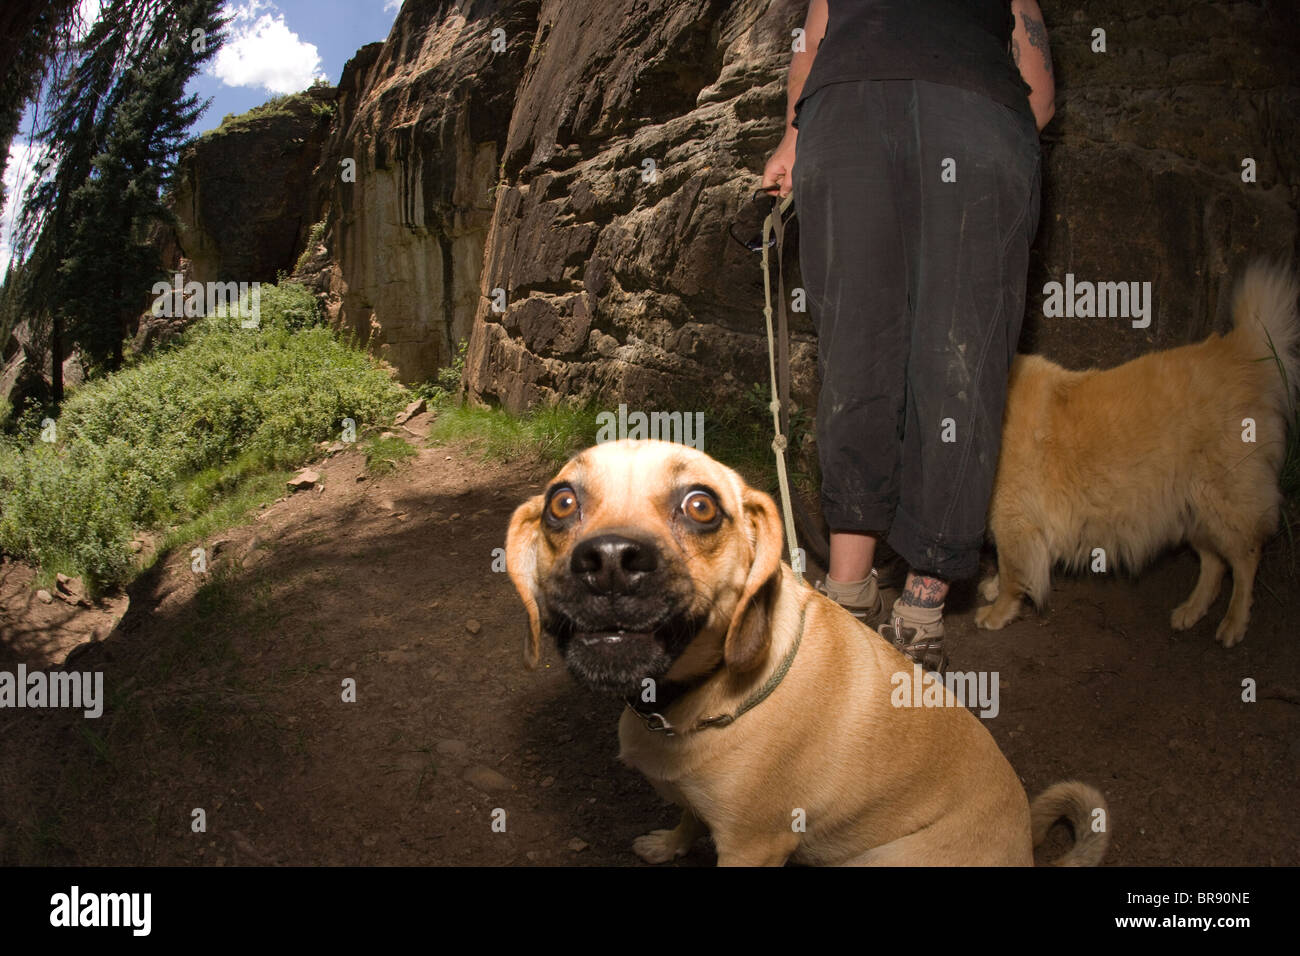 pug mix dog on a leash looking at camera outdoors - Stock Image